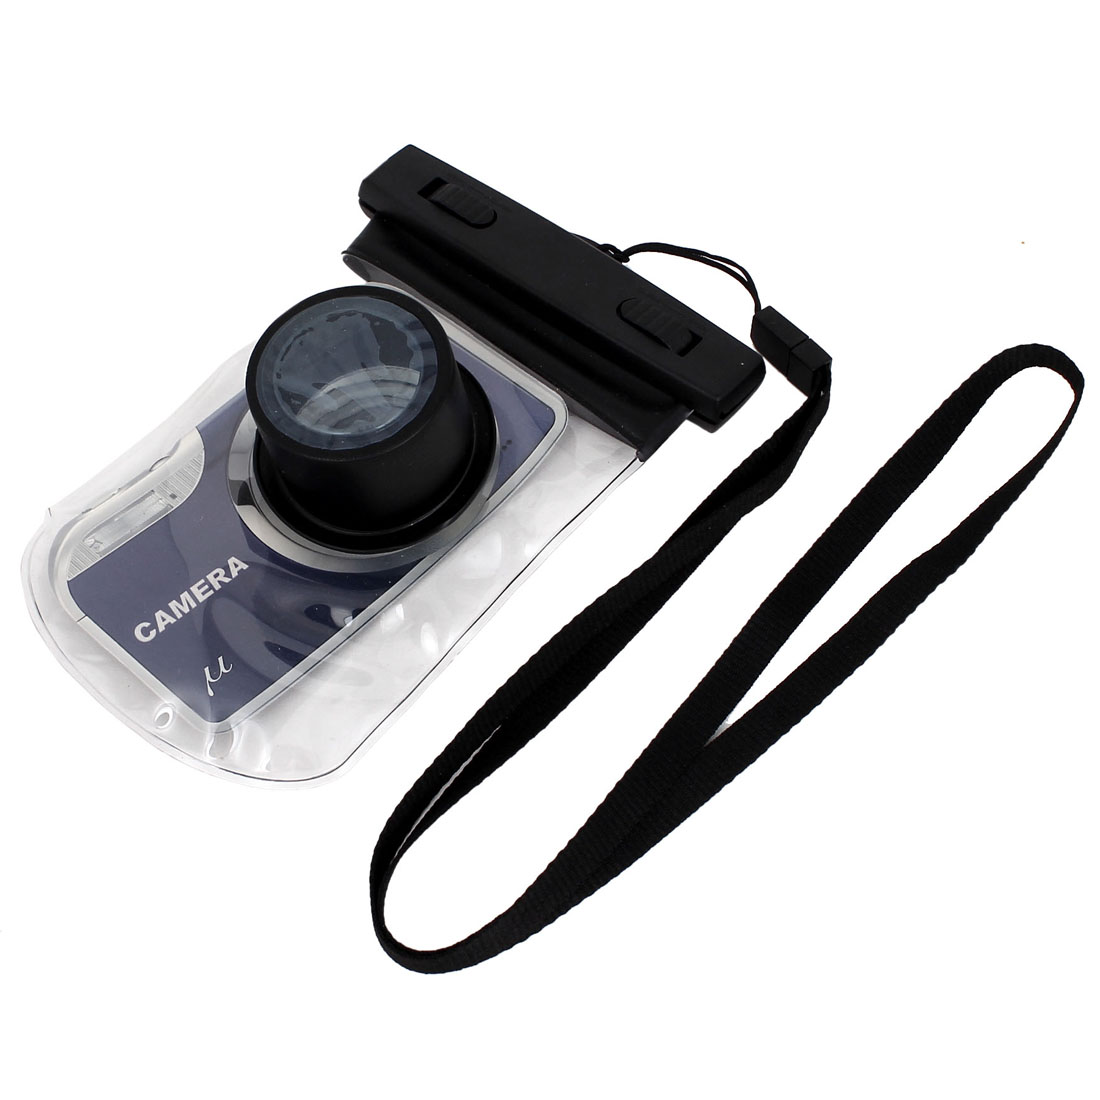 Digital Camera Underwater Waterproof Case Dry Bag for Swimming Beach Holiday